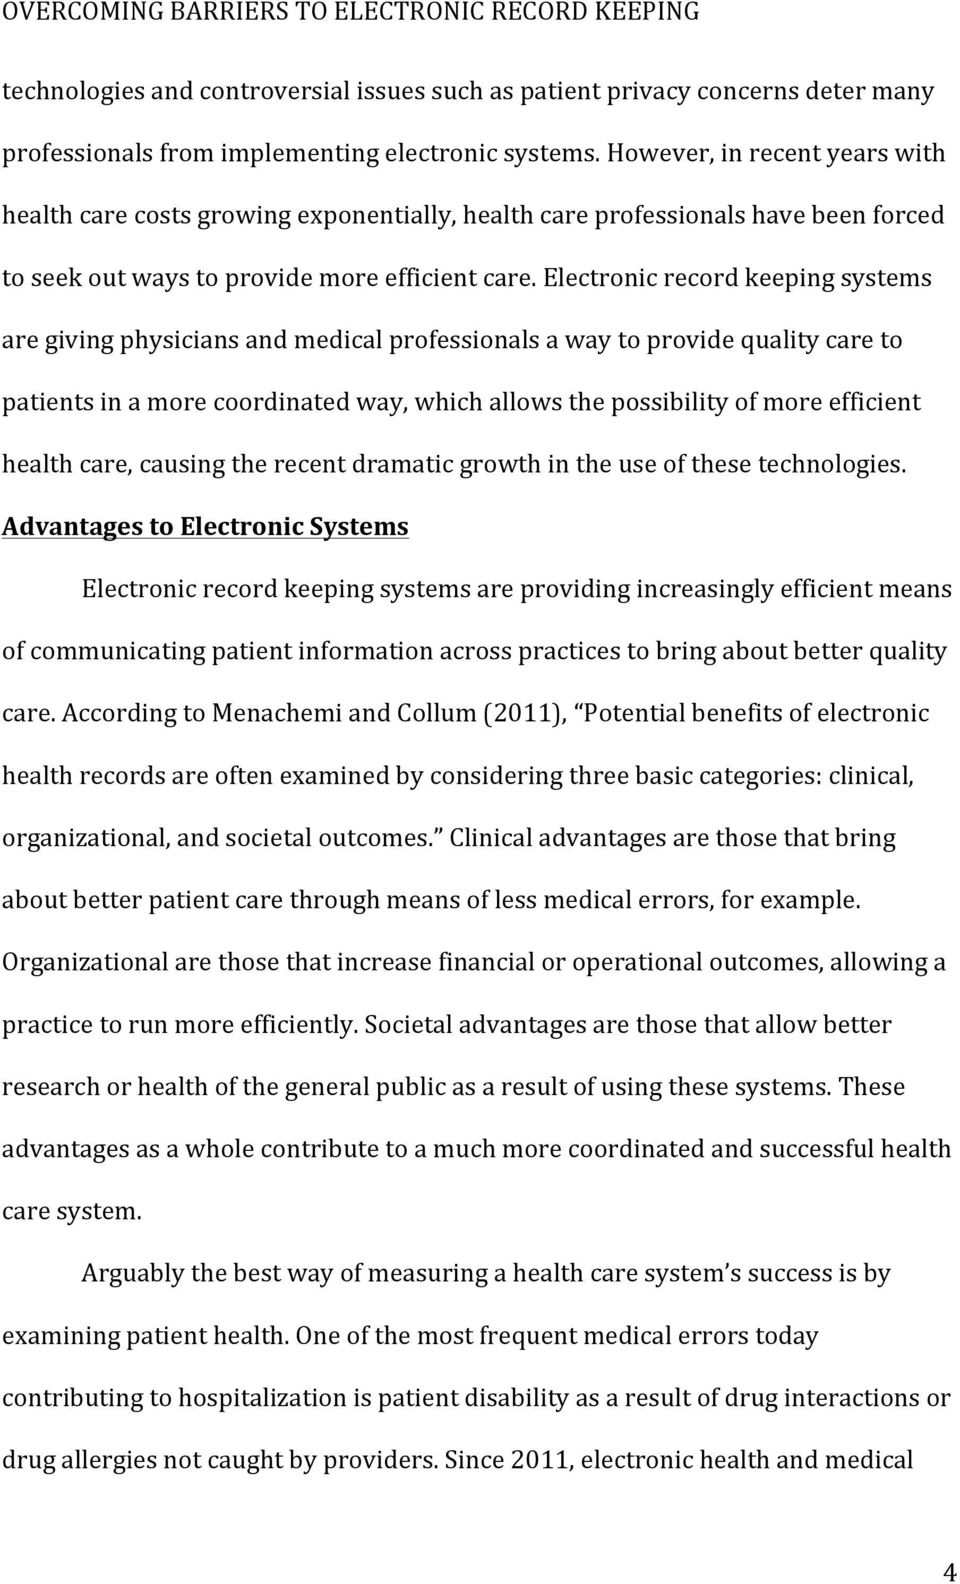 Electronic record keeping systems are giving physicians and medical professionals a way to provide quality care to patients in a more coordinated way, which allows the possibility of more efficient